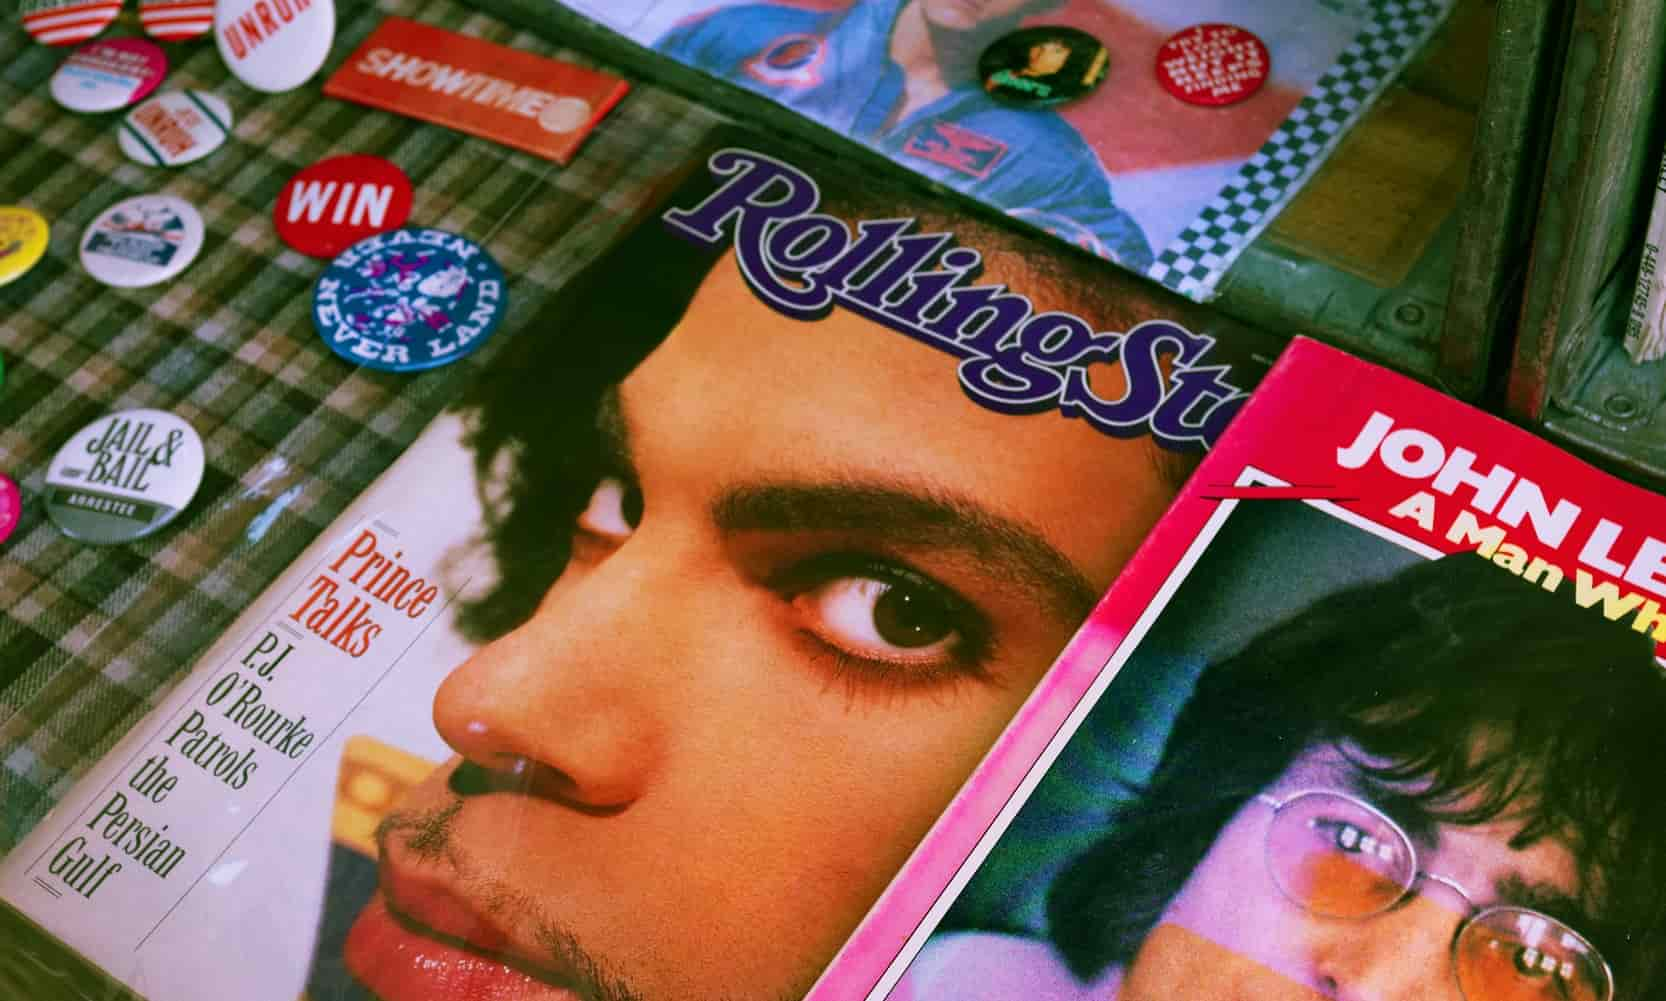 Many celebrities have come from Minnesota, including Prince and Judy Garland